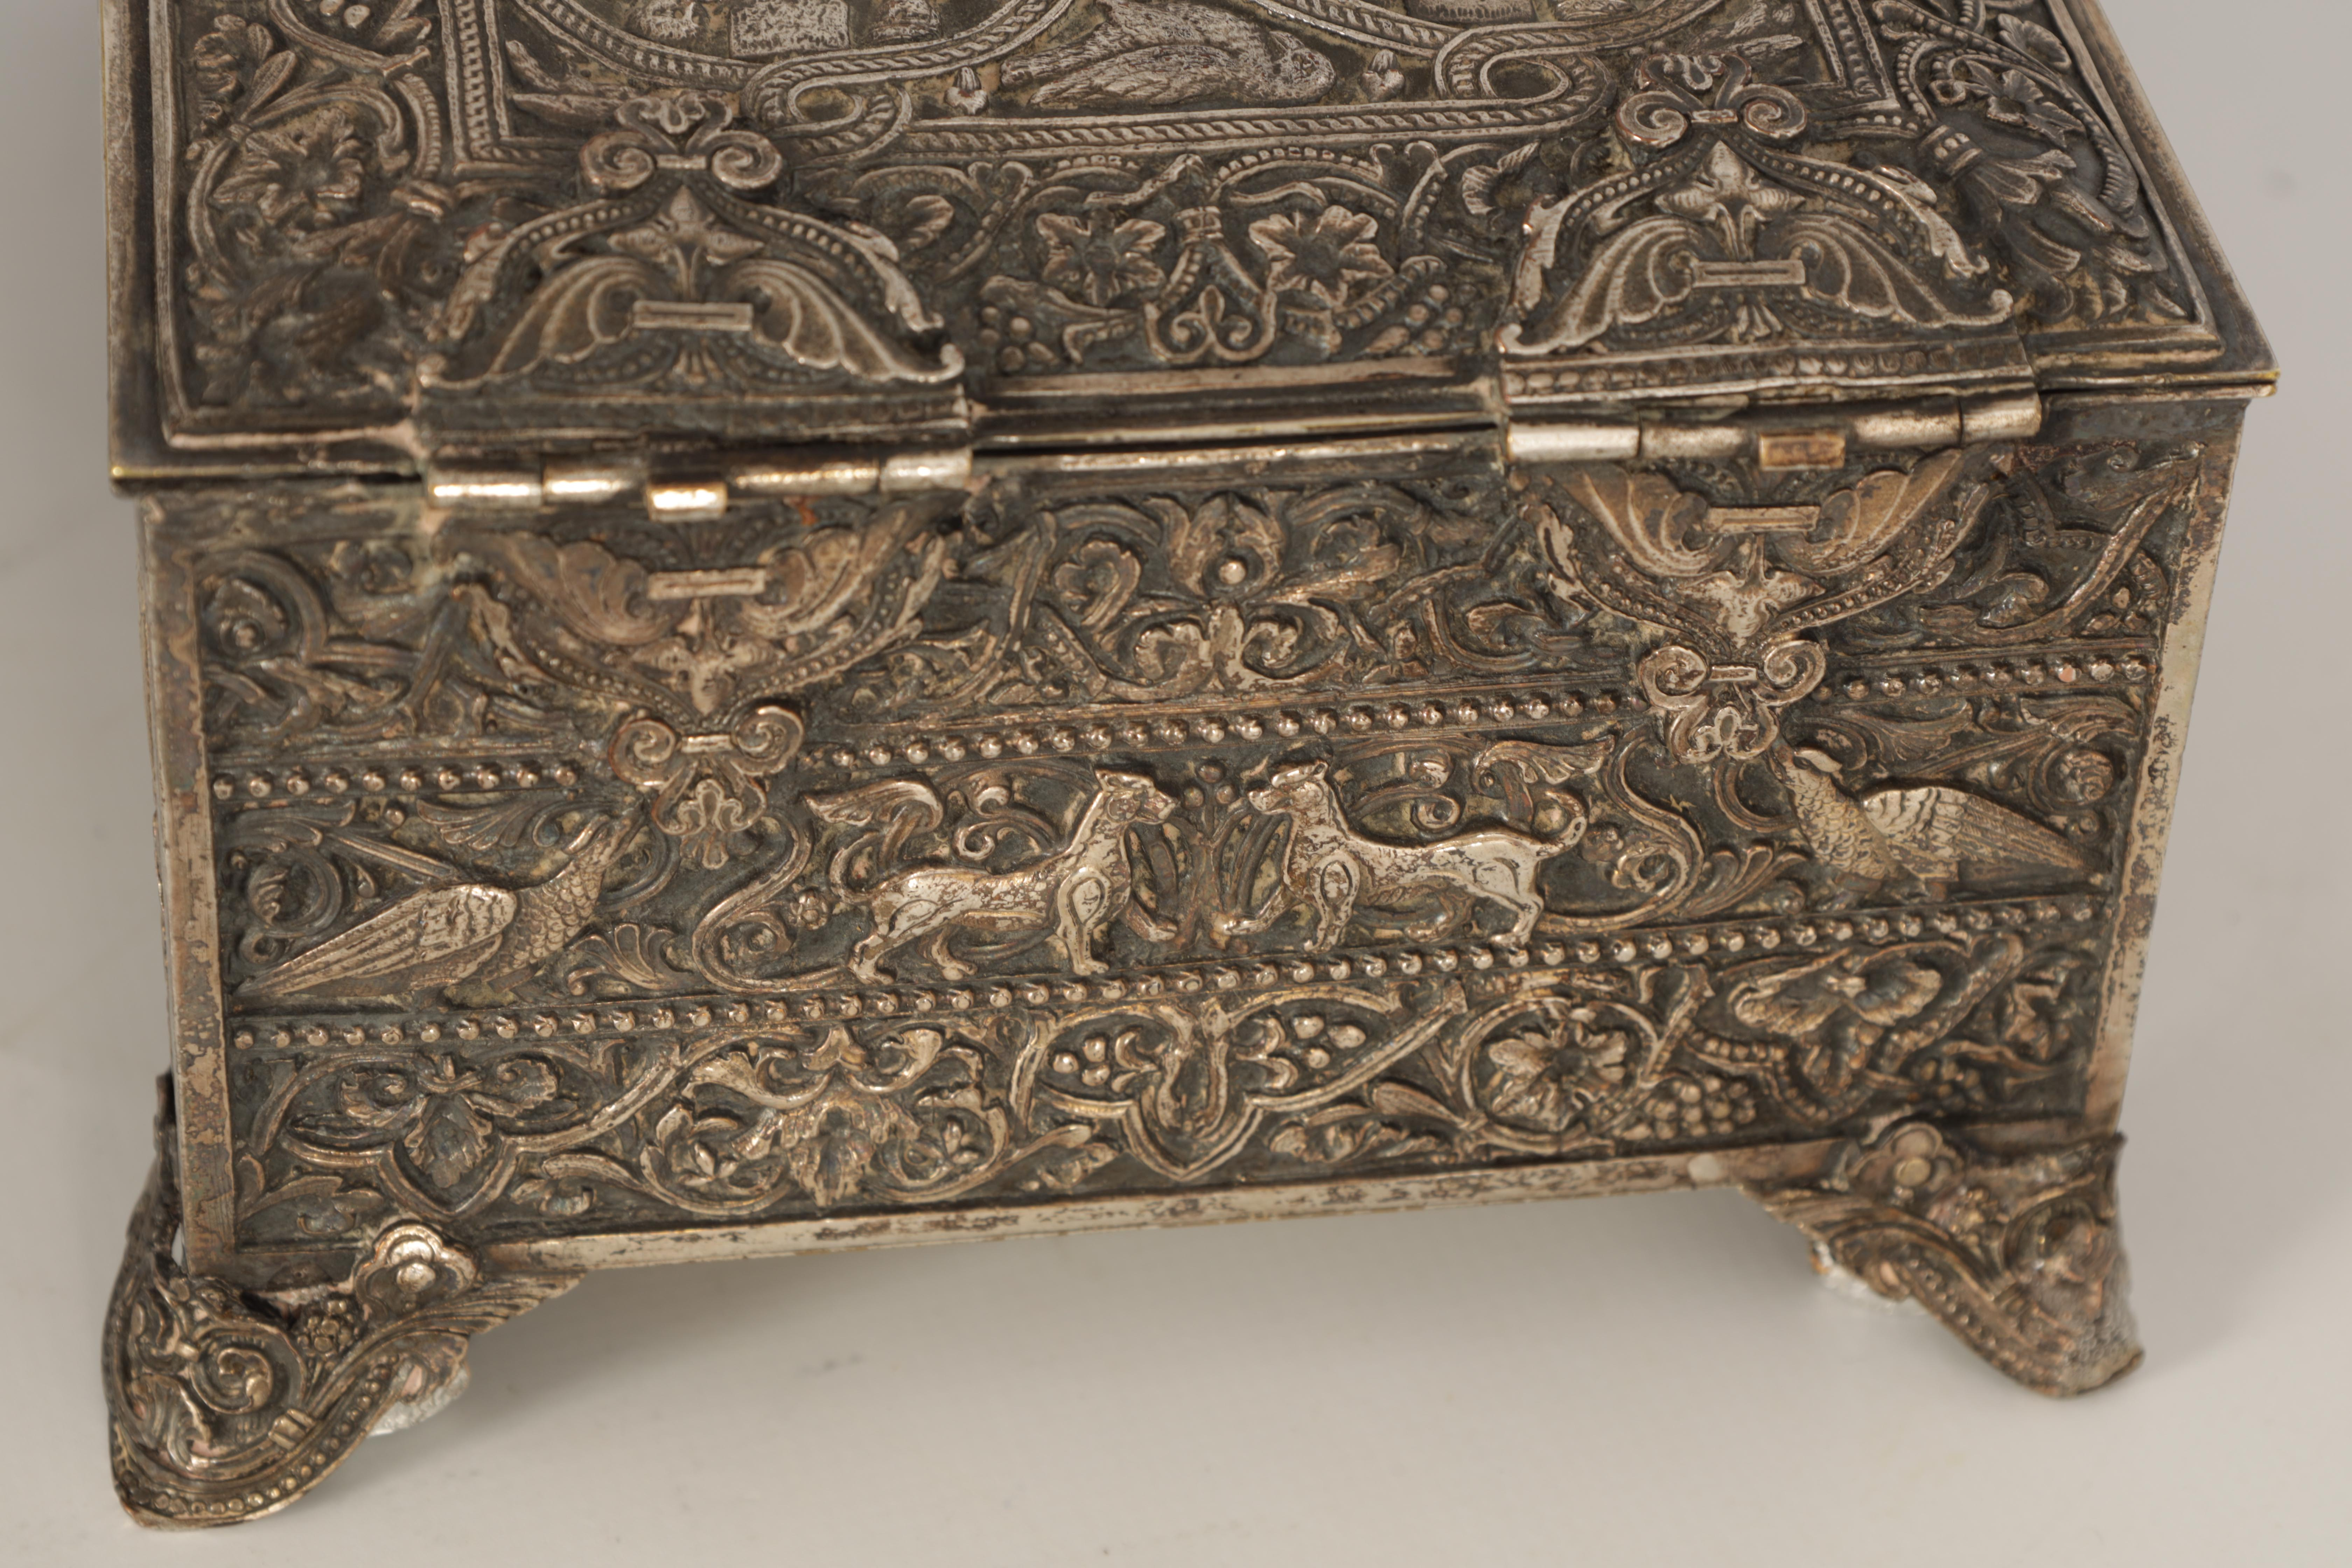 A 19TH CENTURY SILVERED BRONZE JEWELLERY CASKET the lid with intricate relief groups of birds, - Image 10 of 12